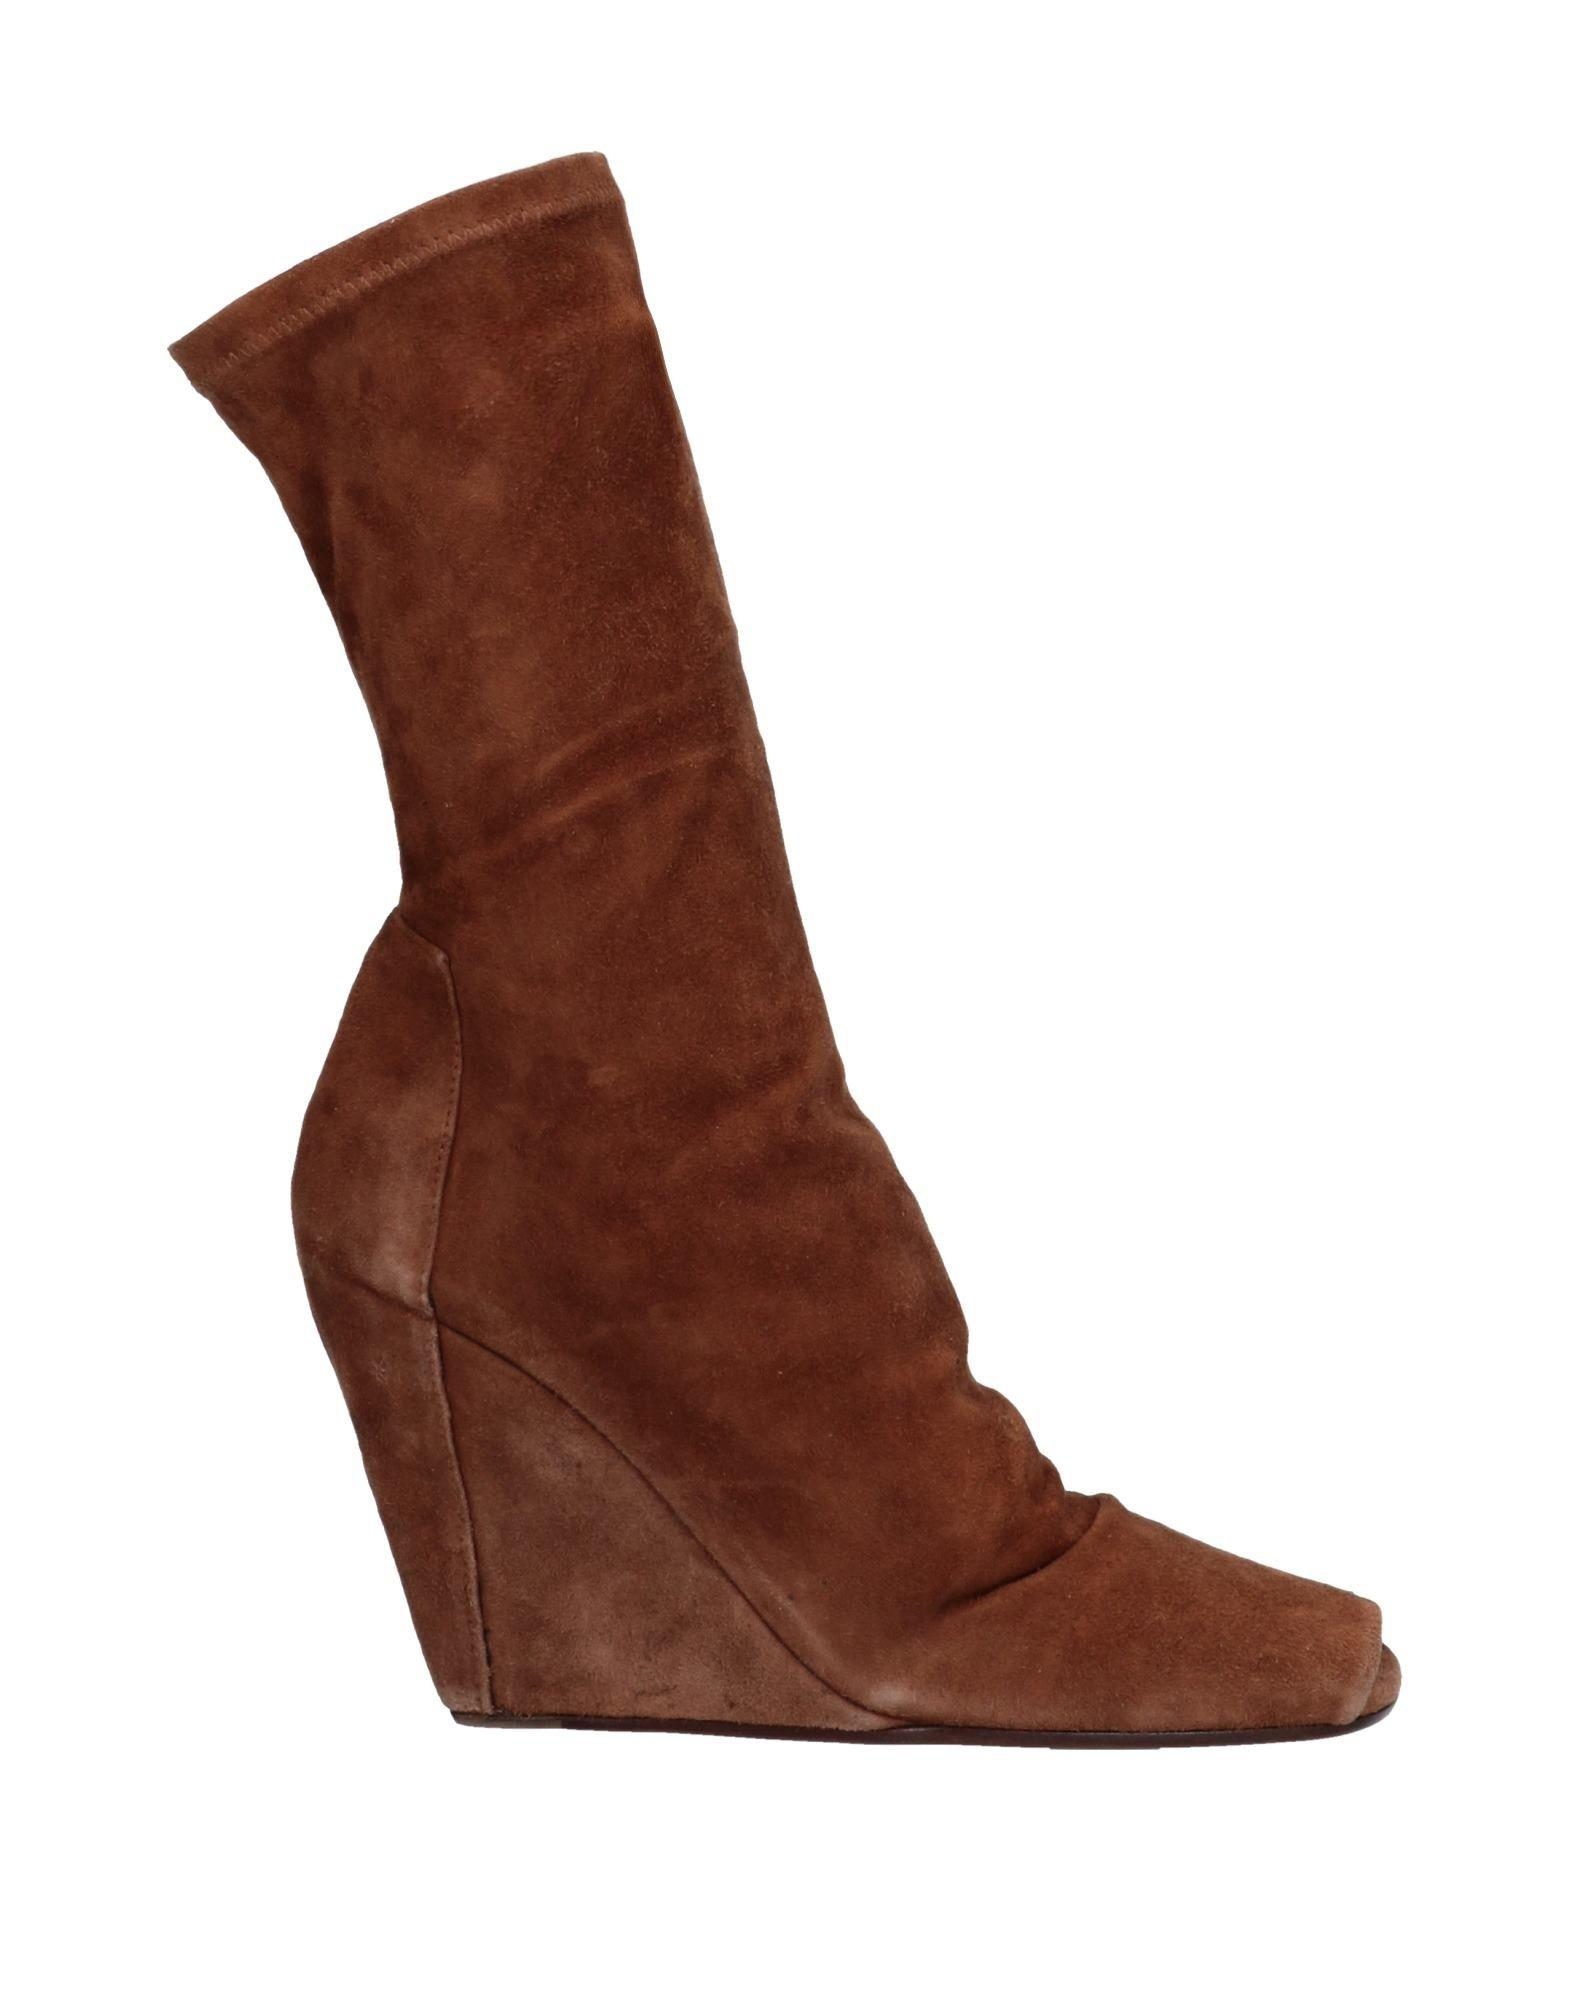 a6ed67ecf17 Lyst - Rick Owens Ankle Boots in Brown